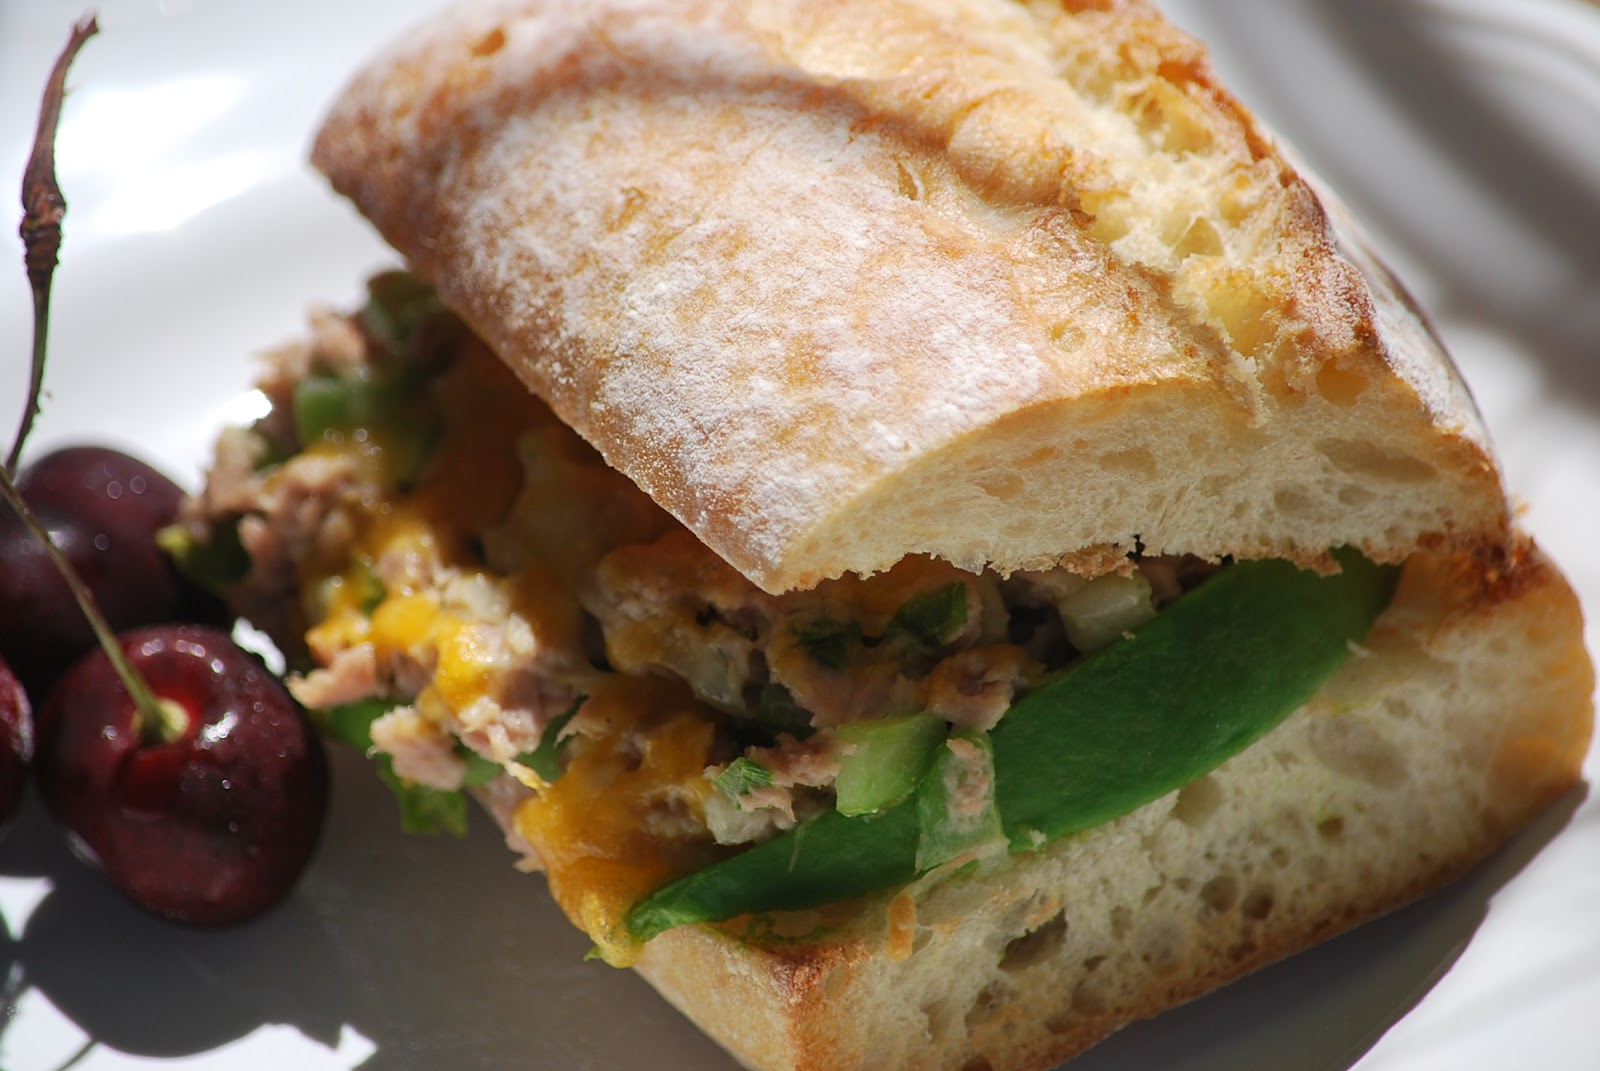 My story in recipes: Tuna Melt